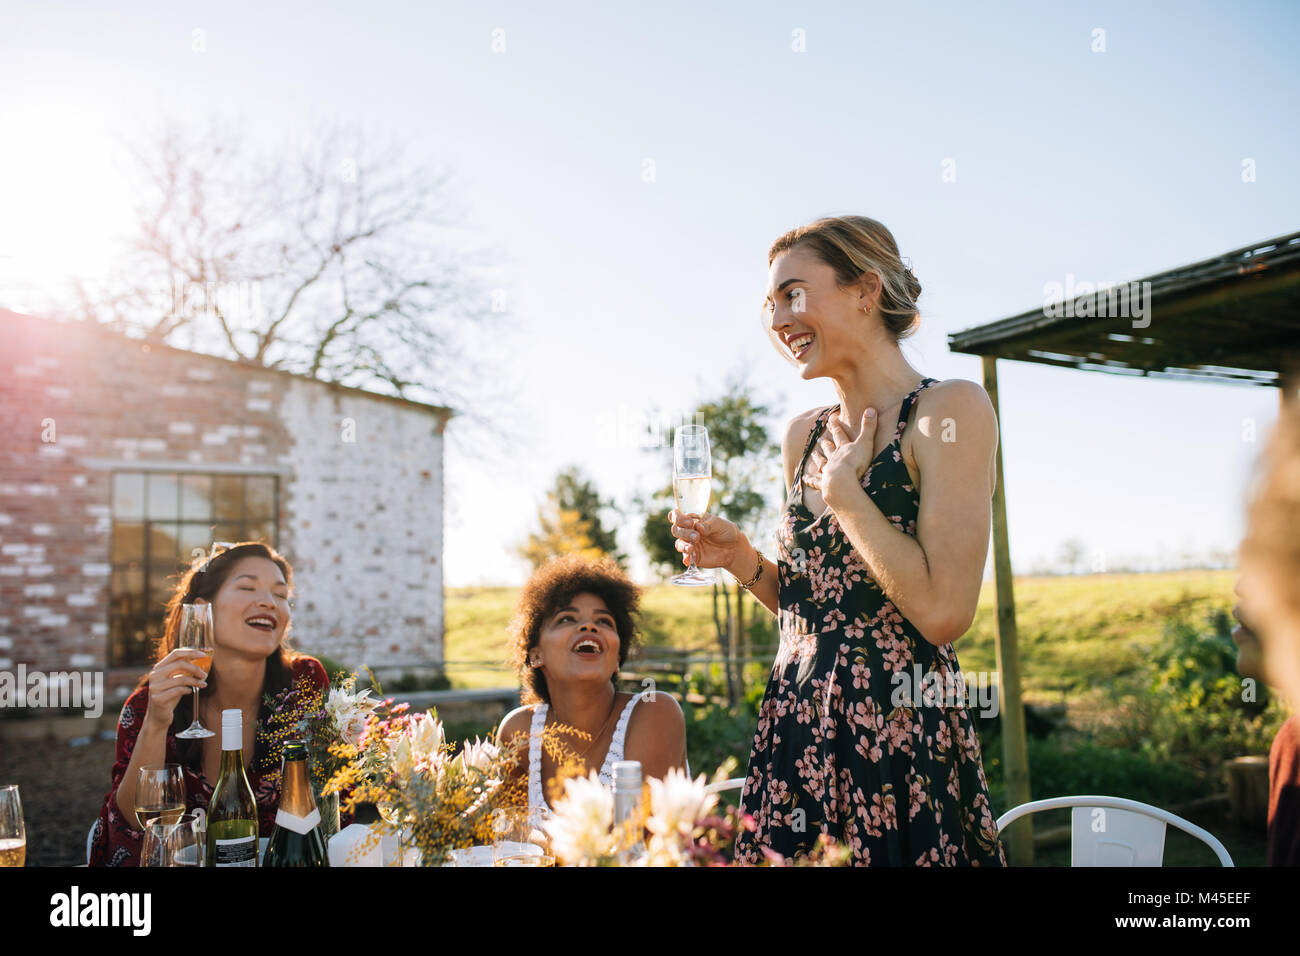 Overwhelmed woman sharing good news with friends at garden restaurant. Friends celebrating a special occasion at - Stock Image